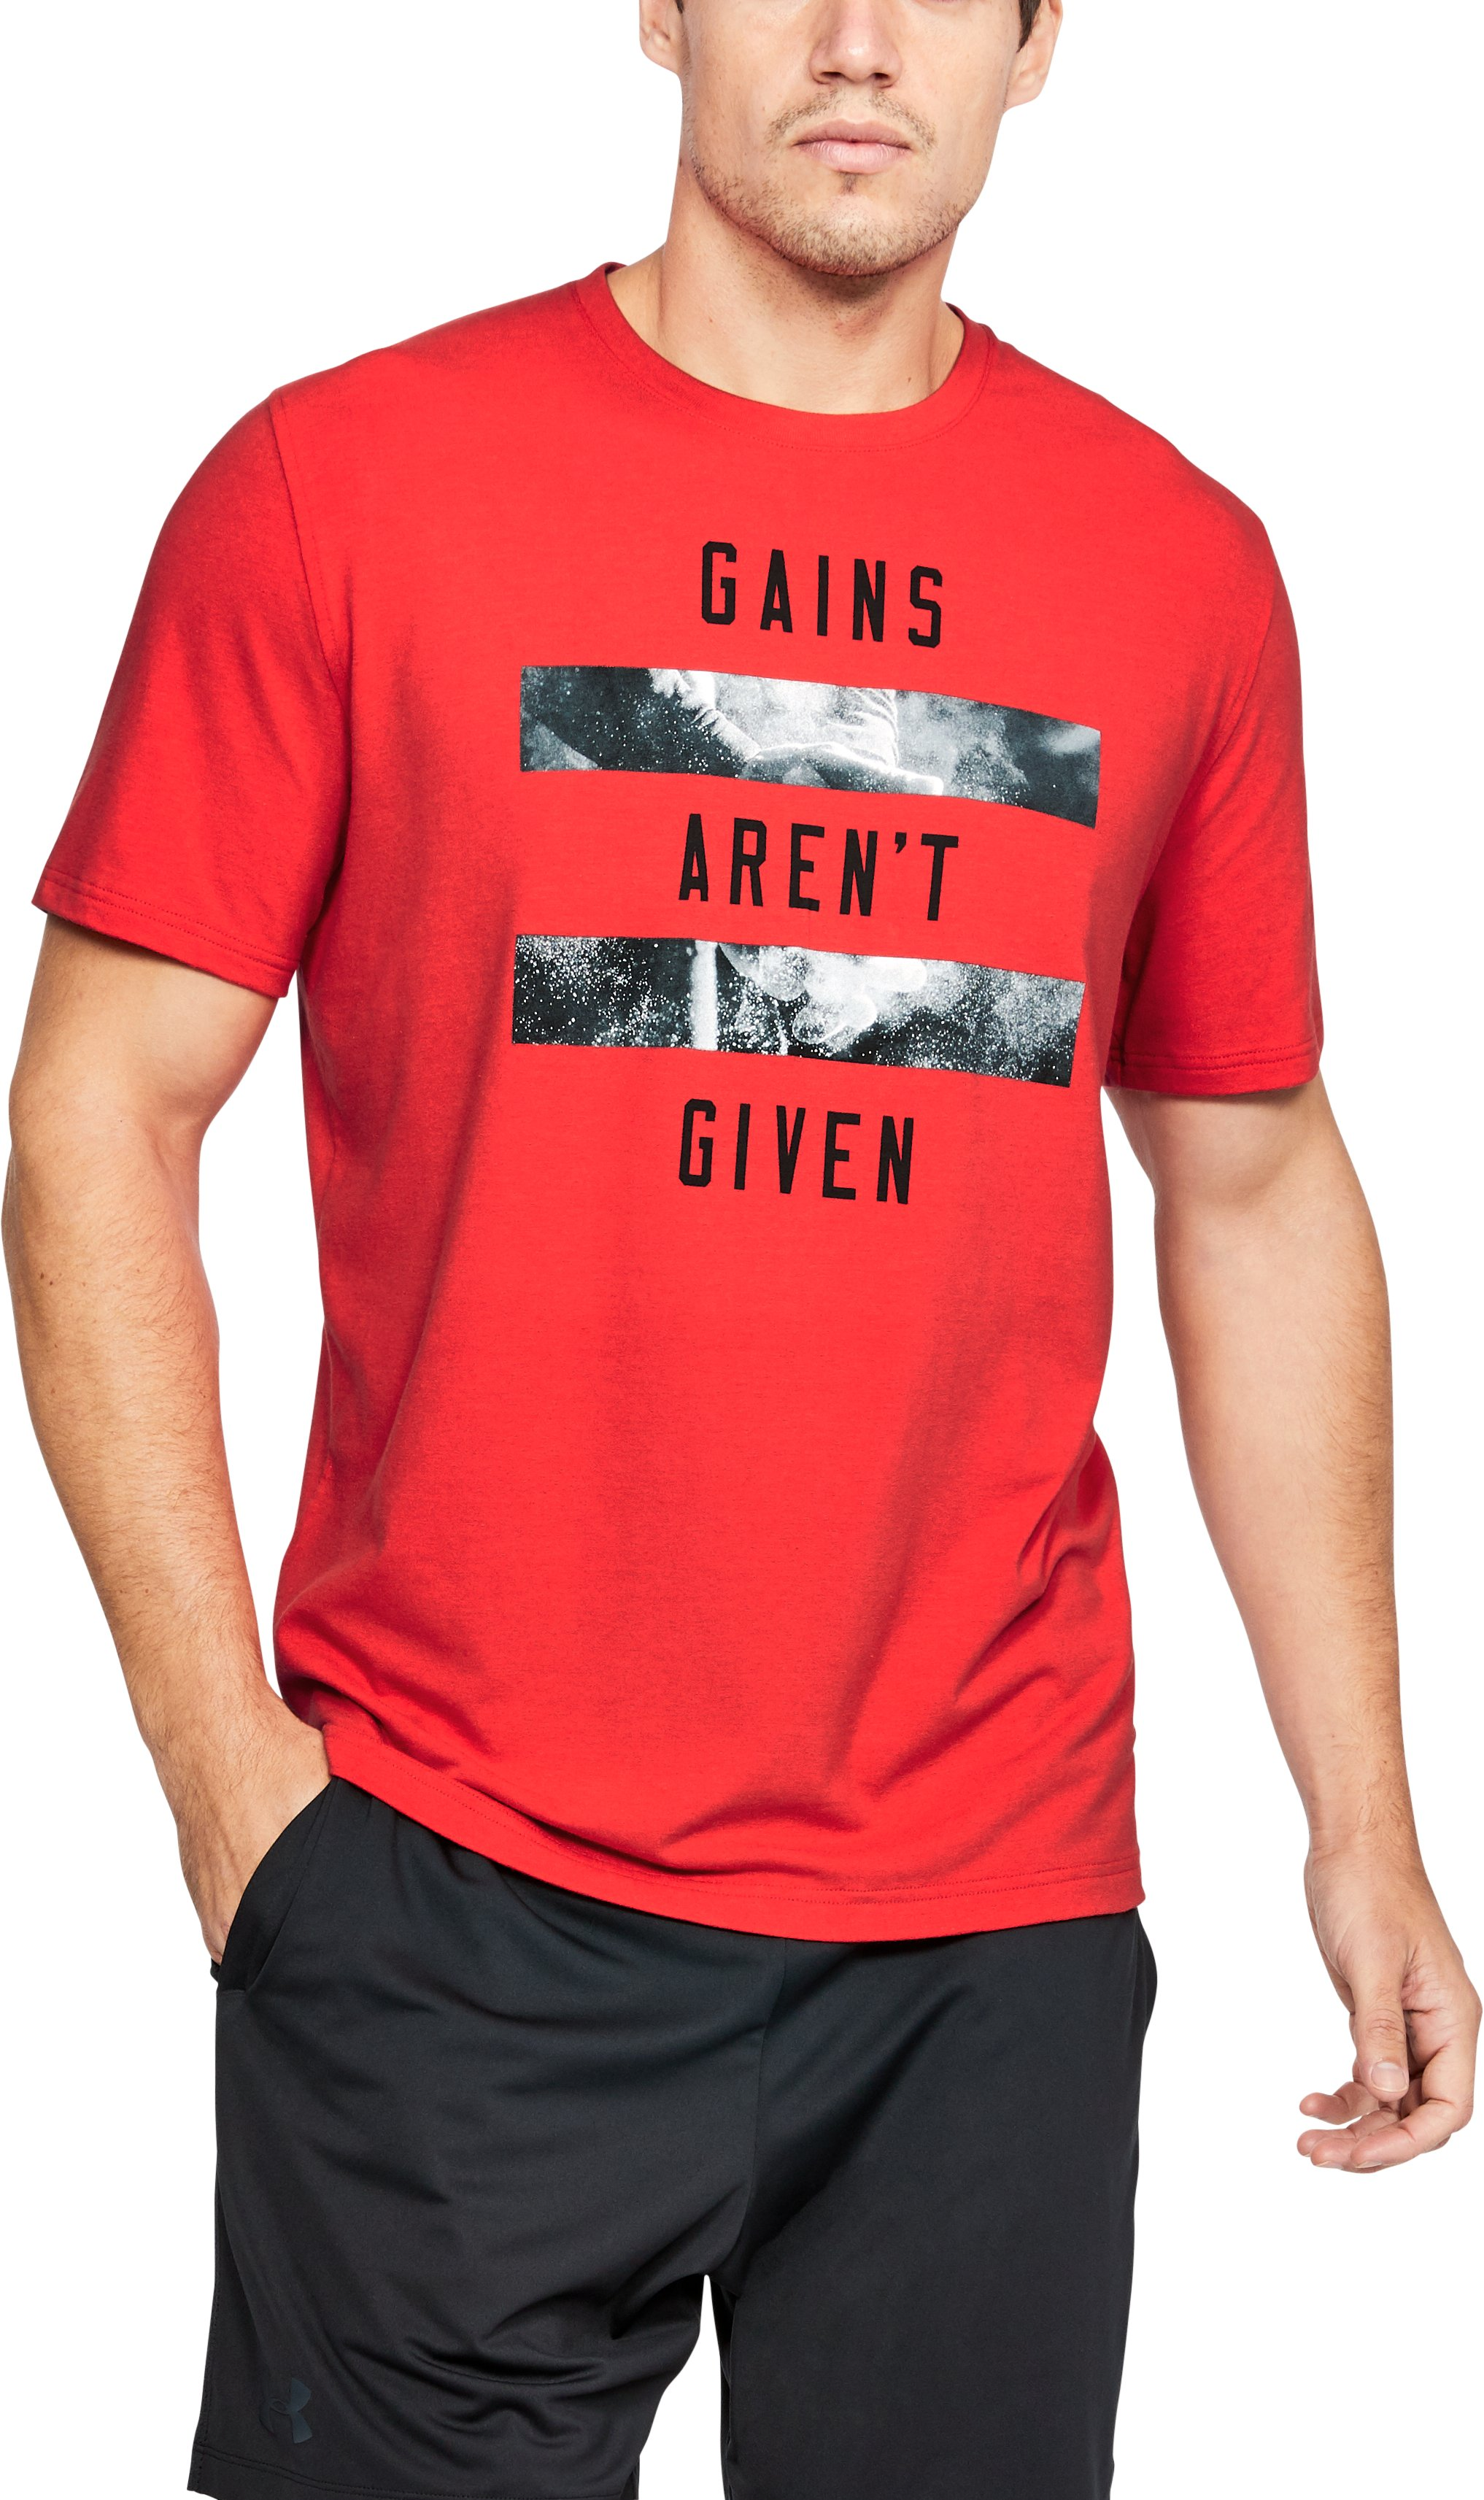 Men's UA Gains Aren't Given T-Shirt, Red